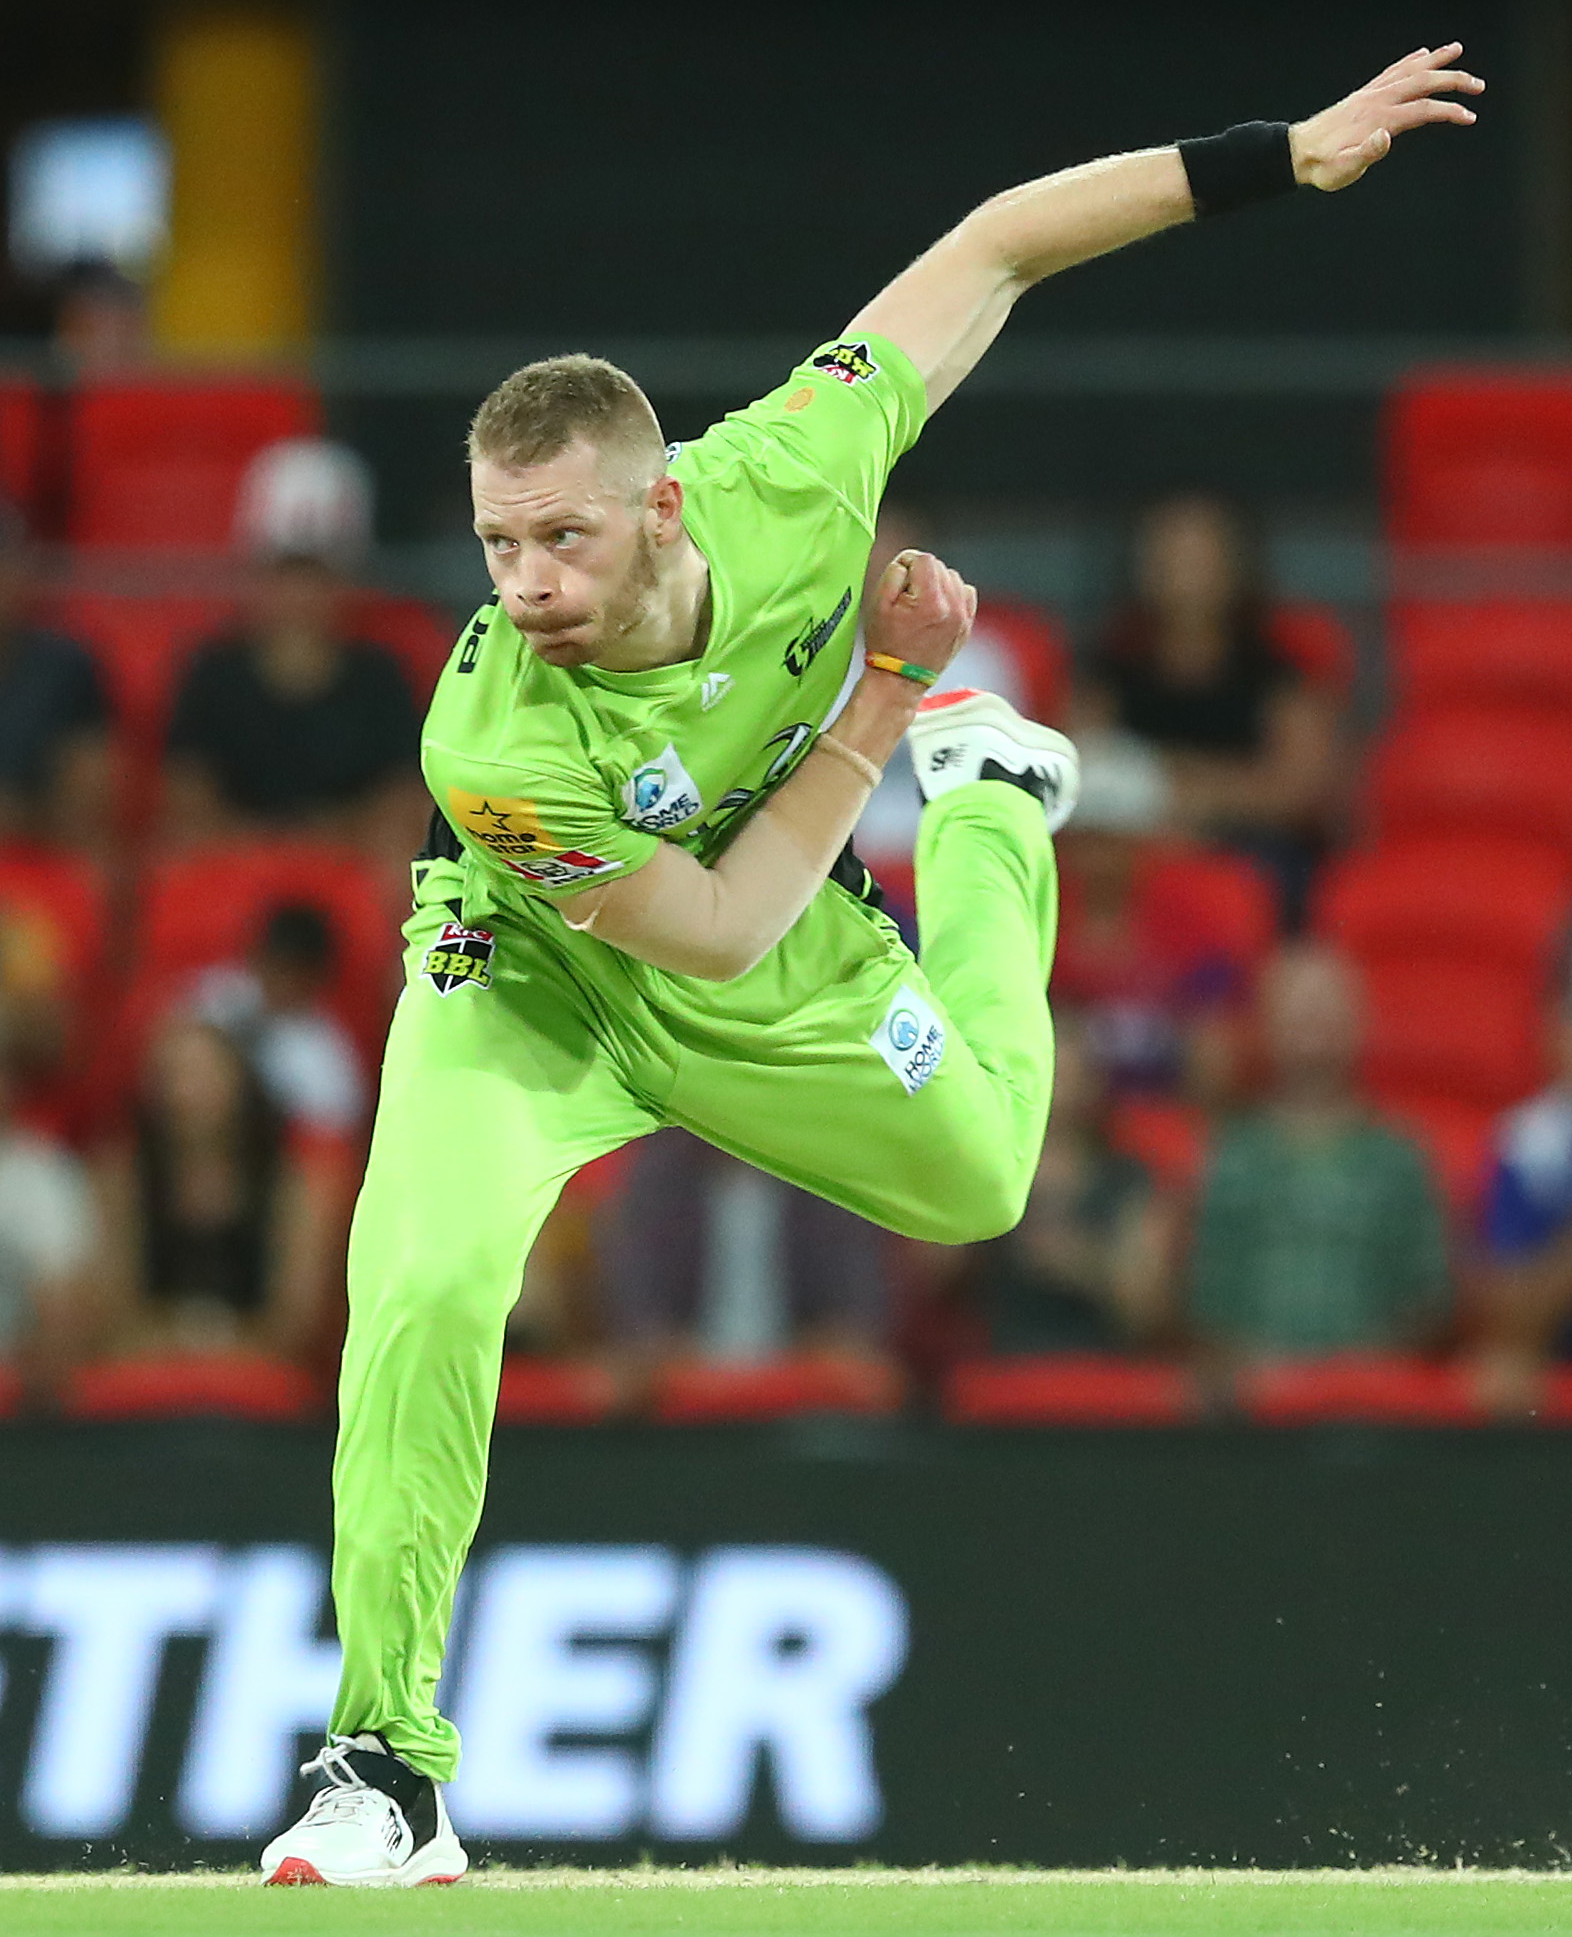 Sydney Thunder quick Nathan McAndrew has crossed from NSW to SA // Getty